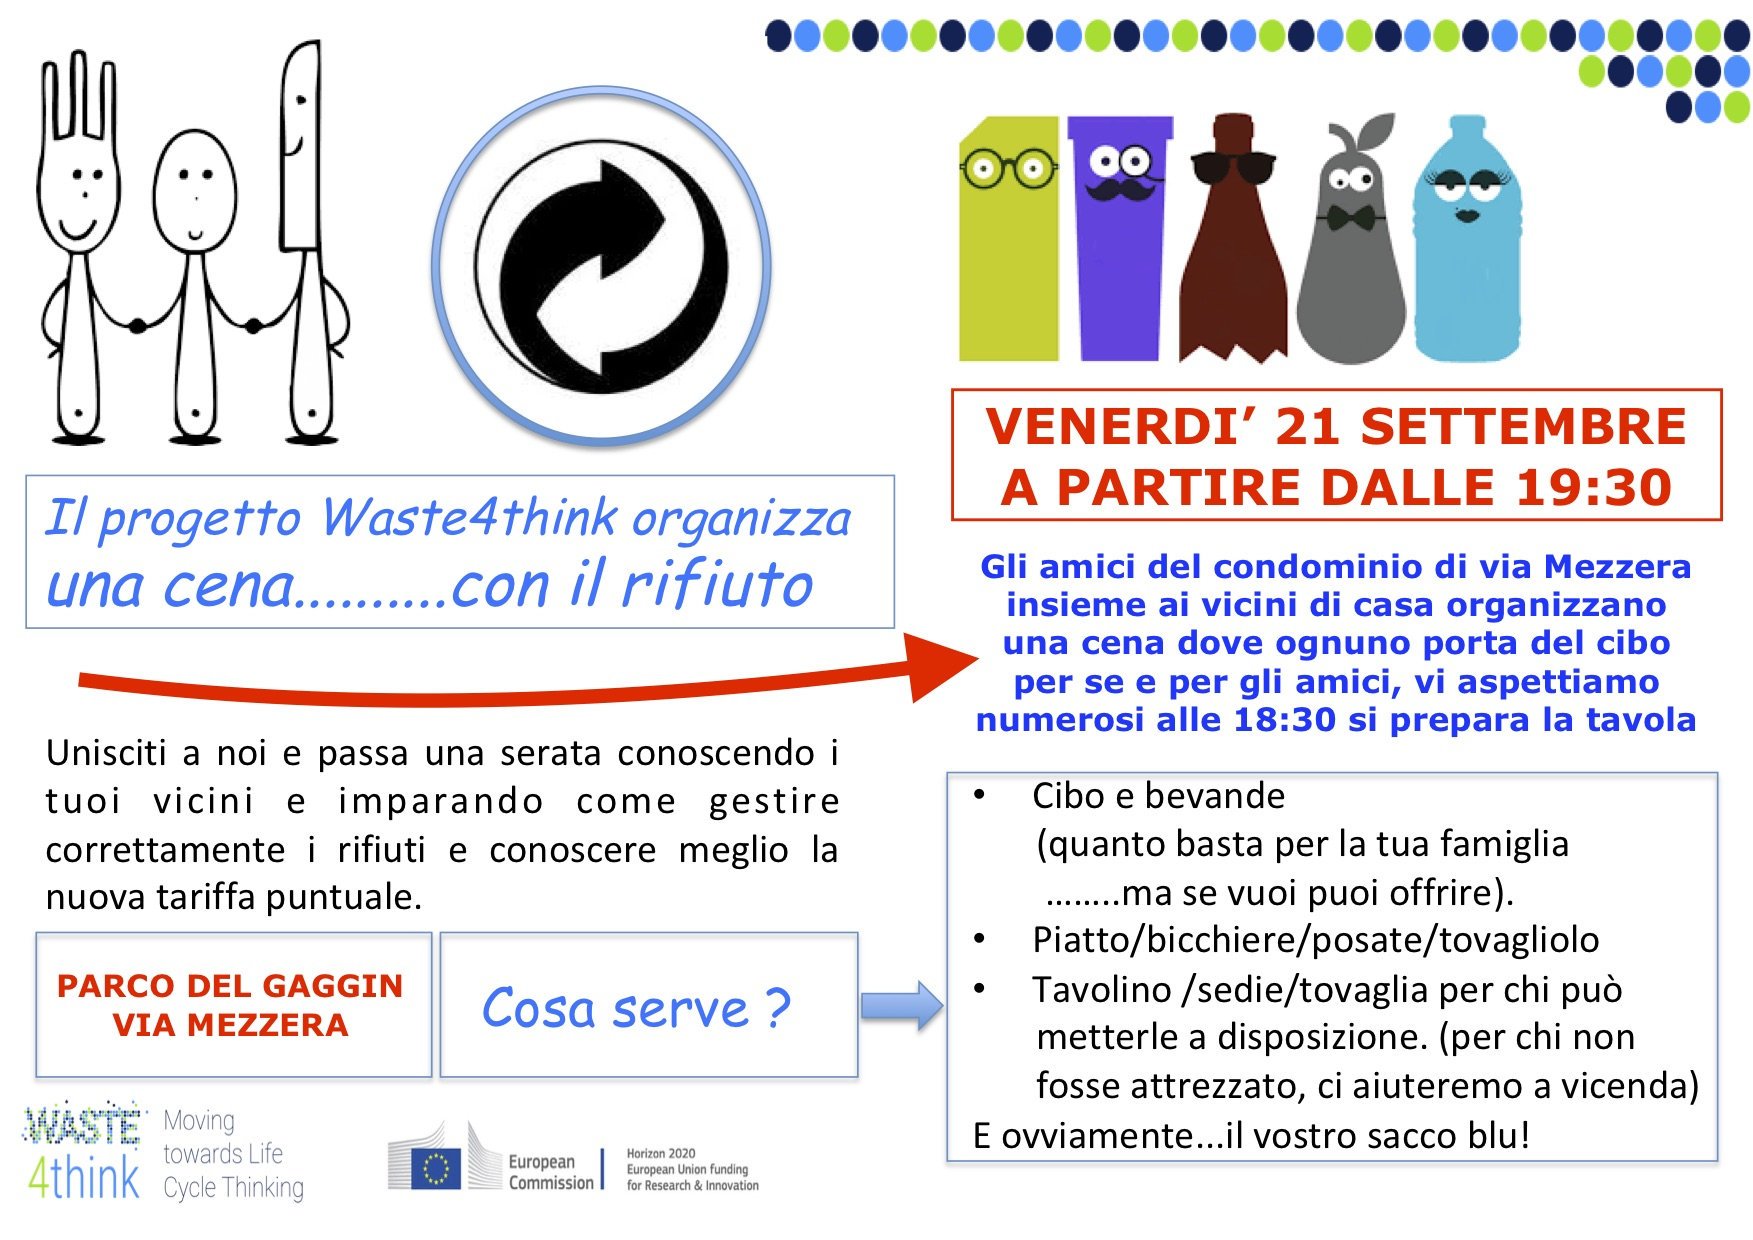 Seveso The Waste4think Project Organizes A Dinner With